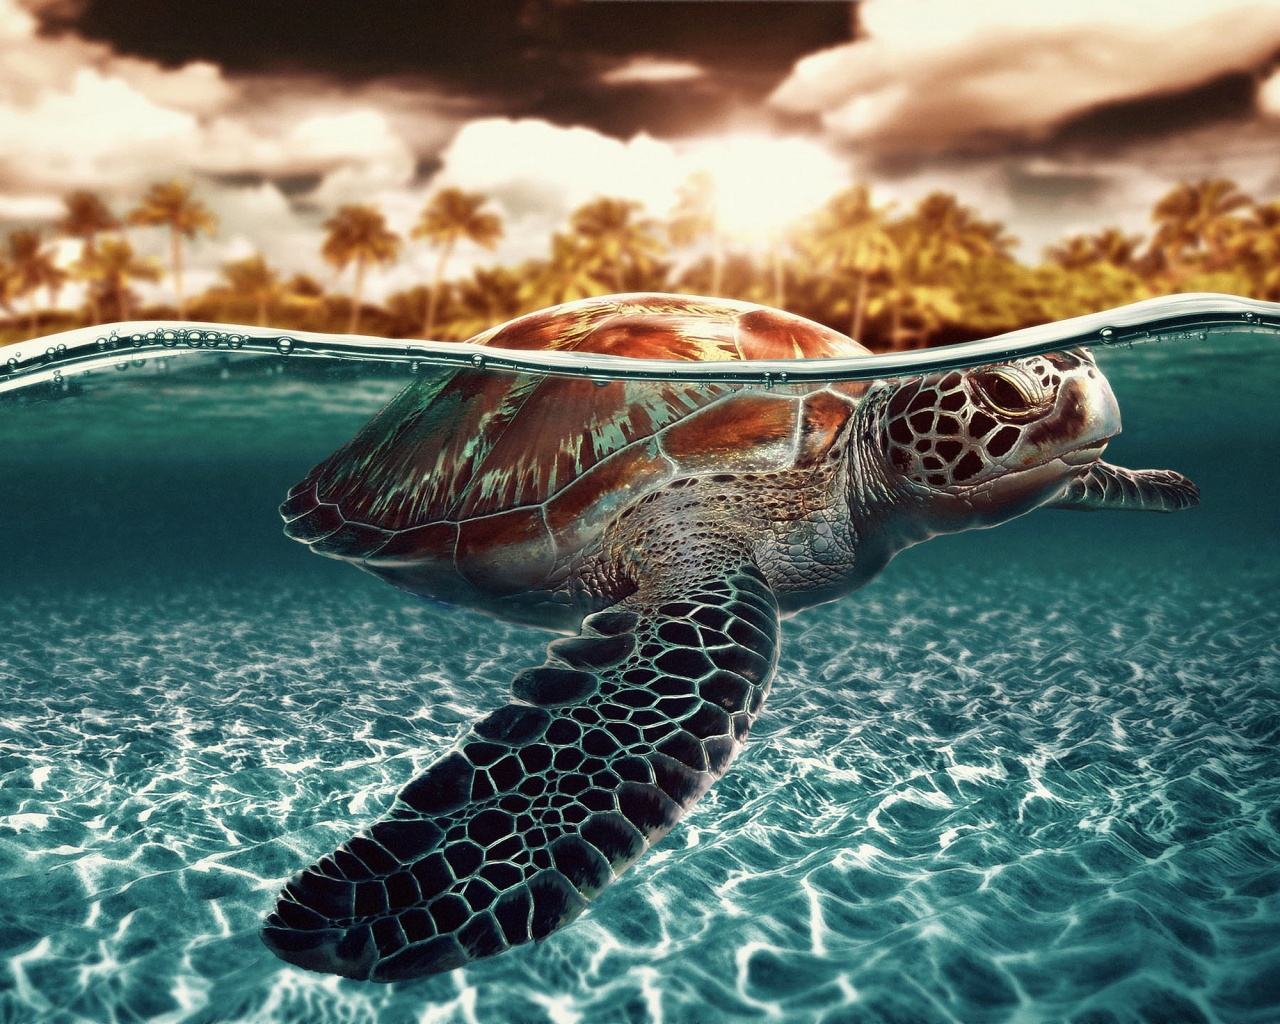 Description: The Wallpaper above is Seaturtle Shark Wallpaper in Resolution 1280x1024. Choose your Resolution and Download Seaturtle Shark Wallpaper